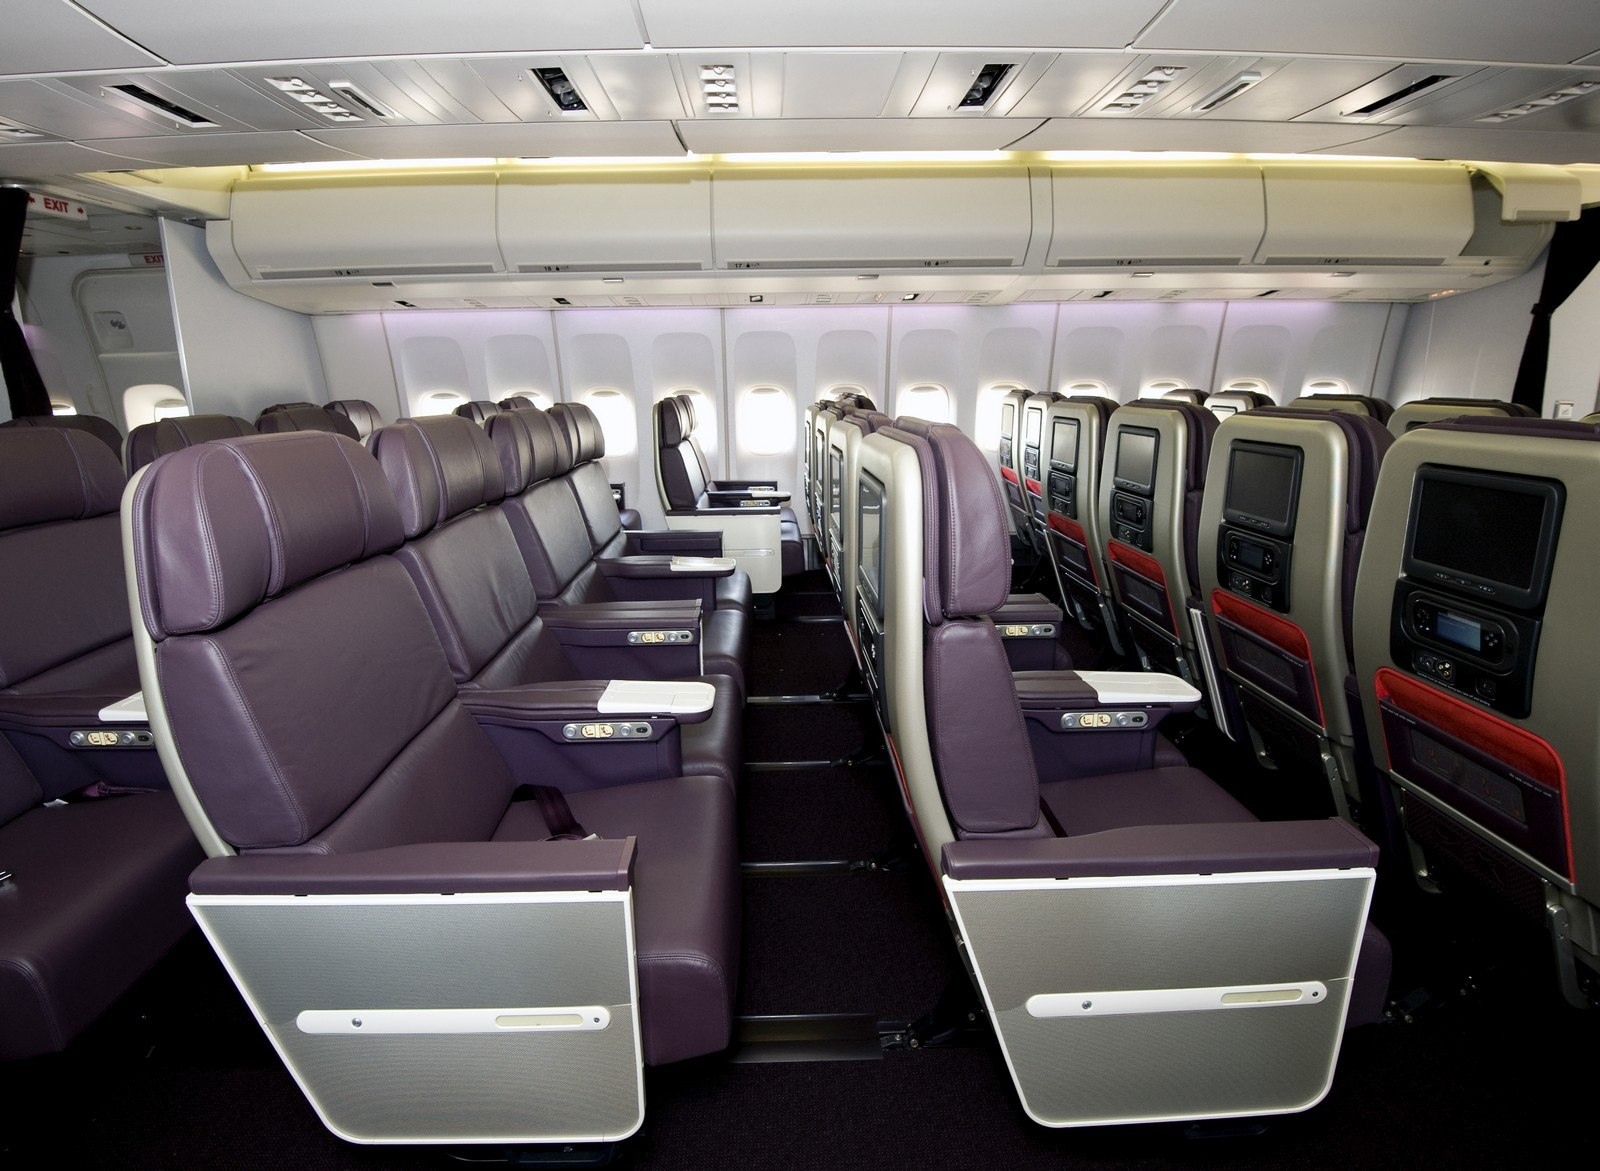 Virgin Atlantic 747 Premium Cabin Interior - Main Deck